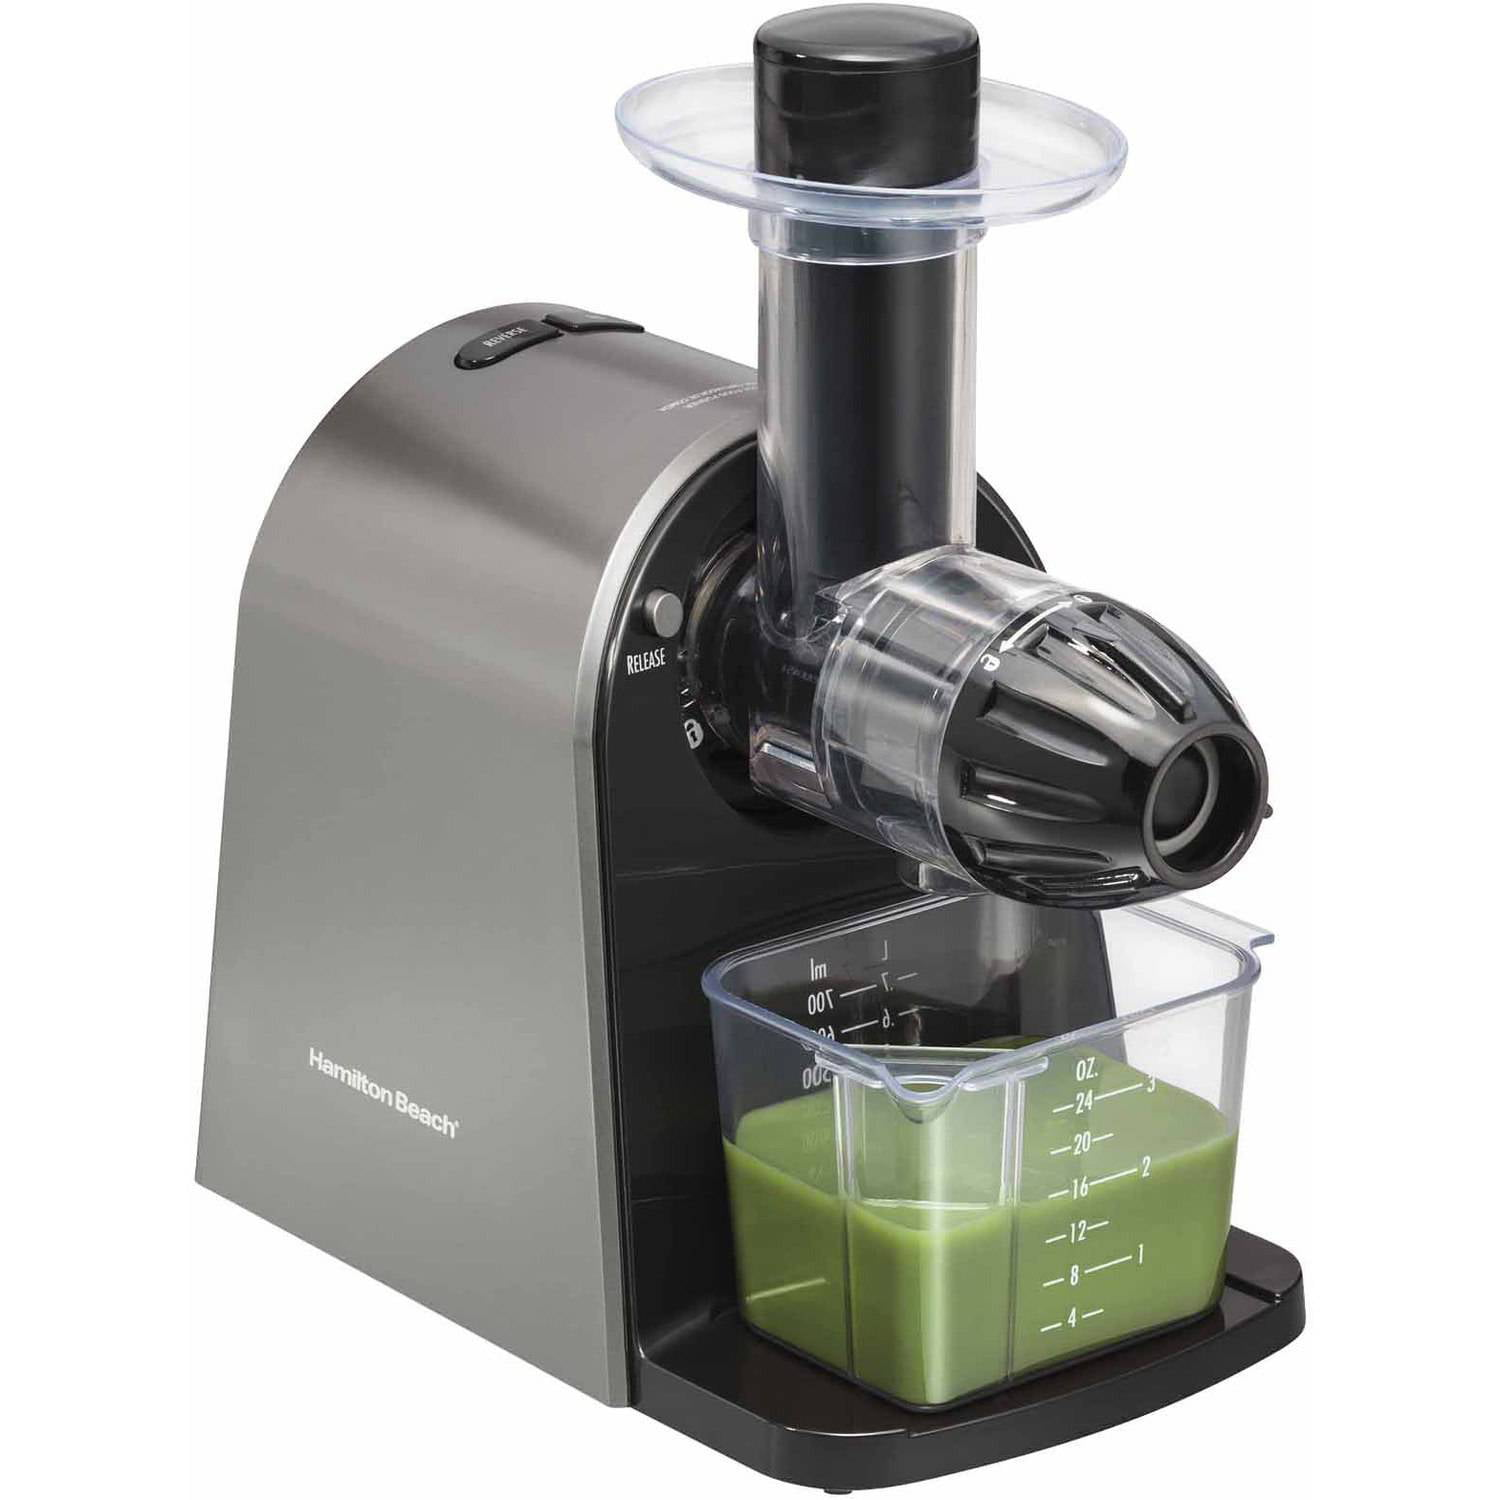 Slow Juicer Machine : Cold Press Juicer Machine - Masticating Juicer Slow Juice ...